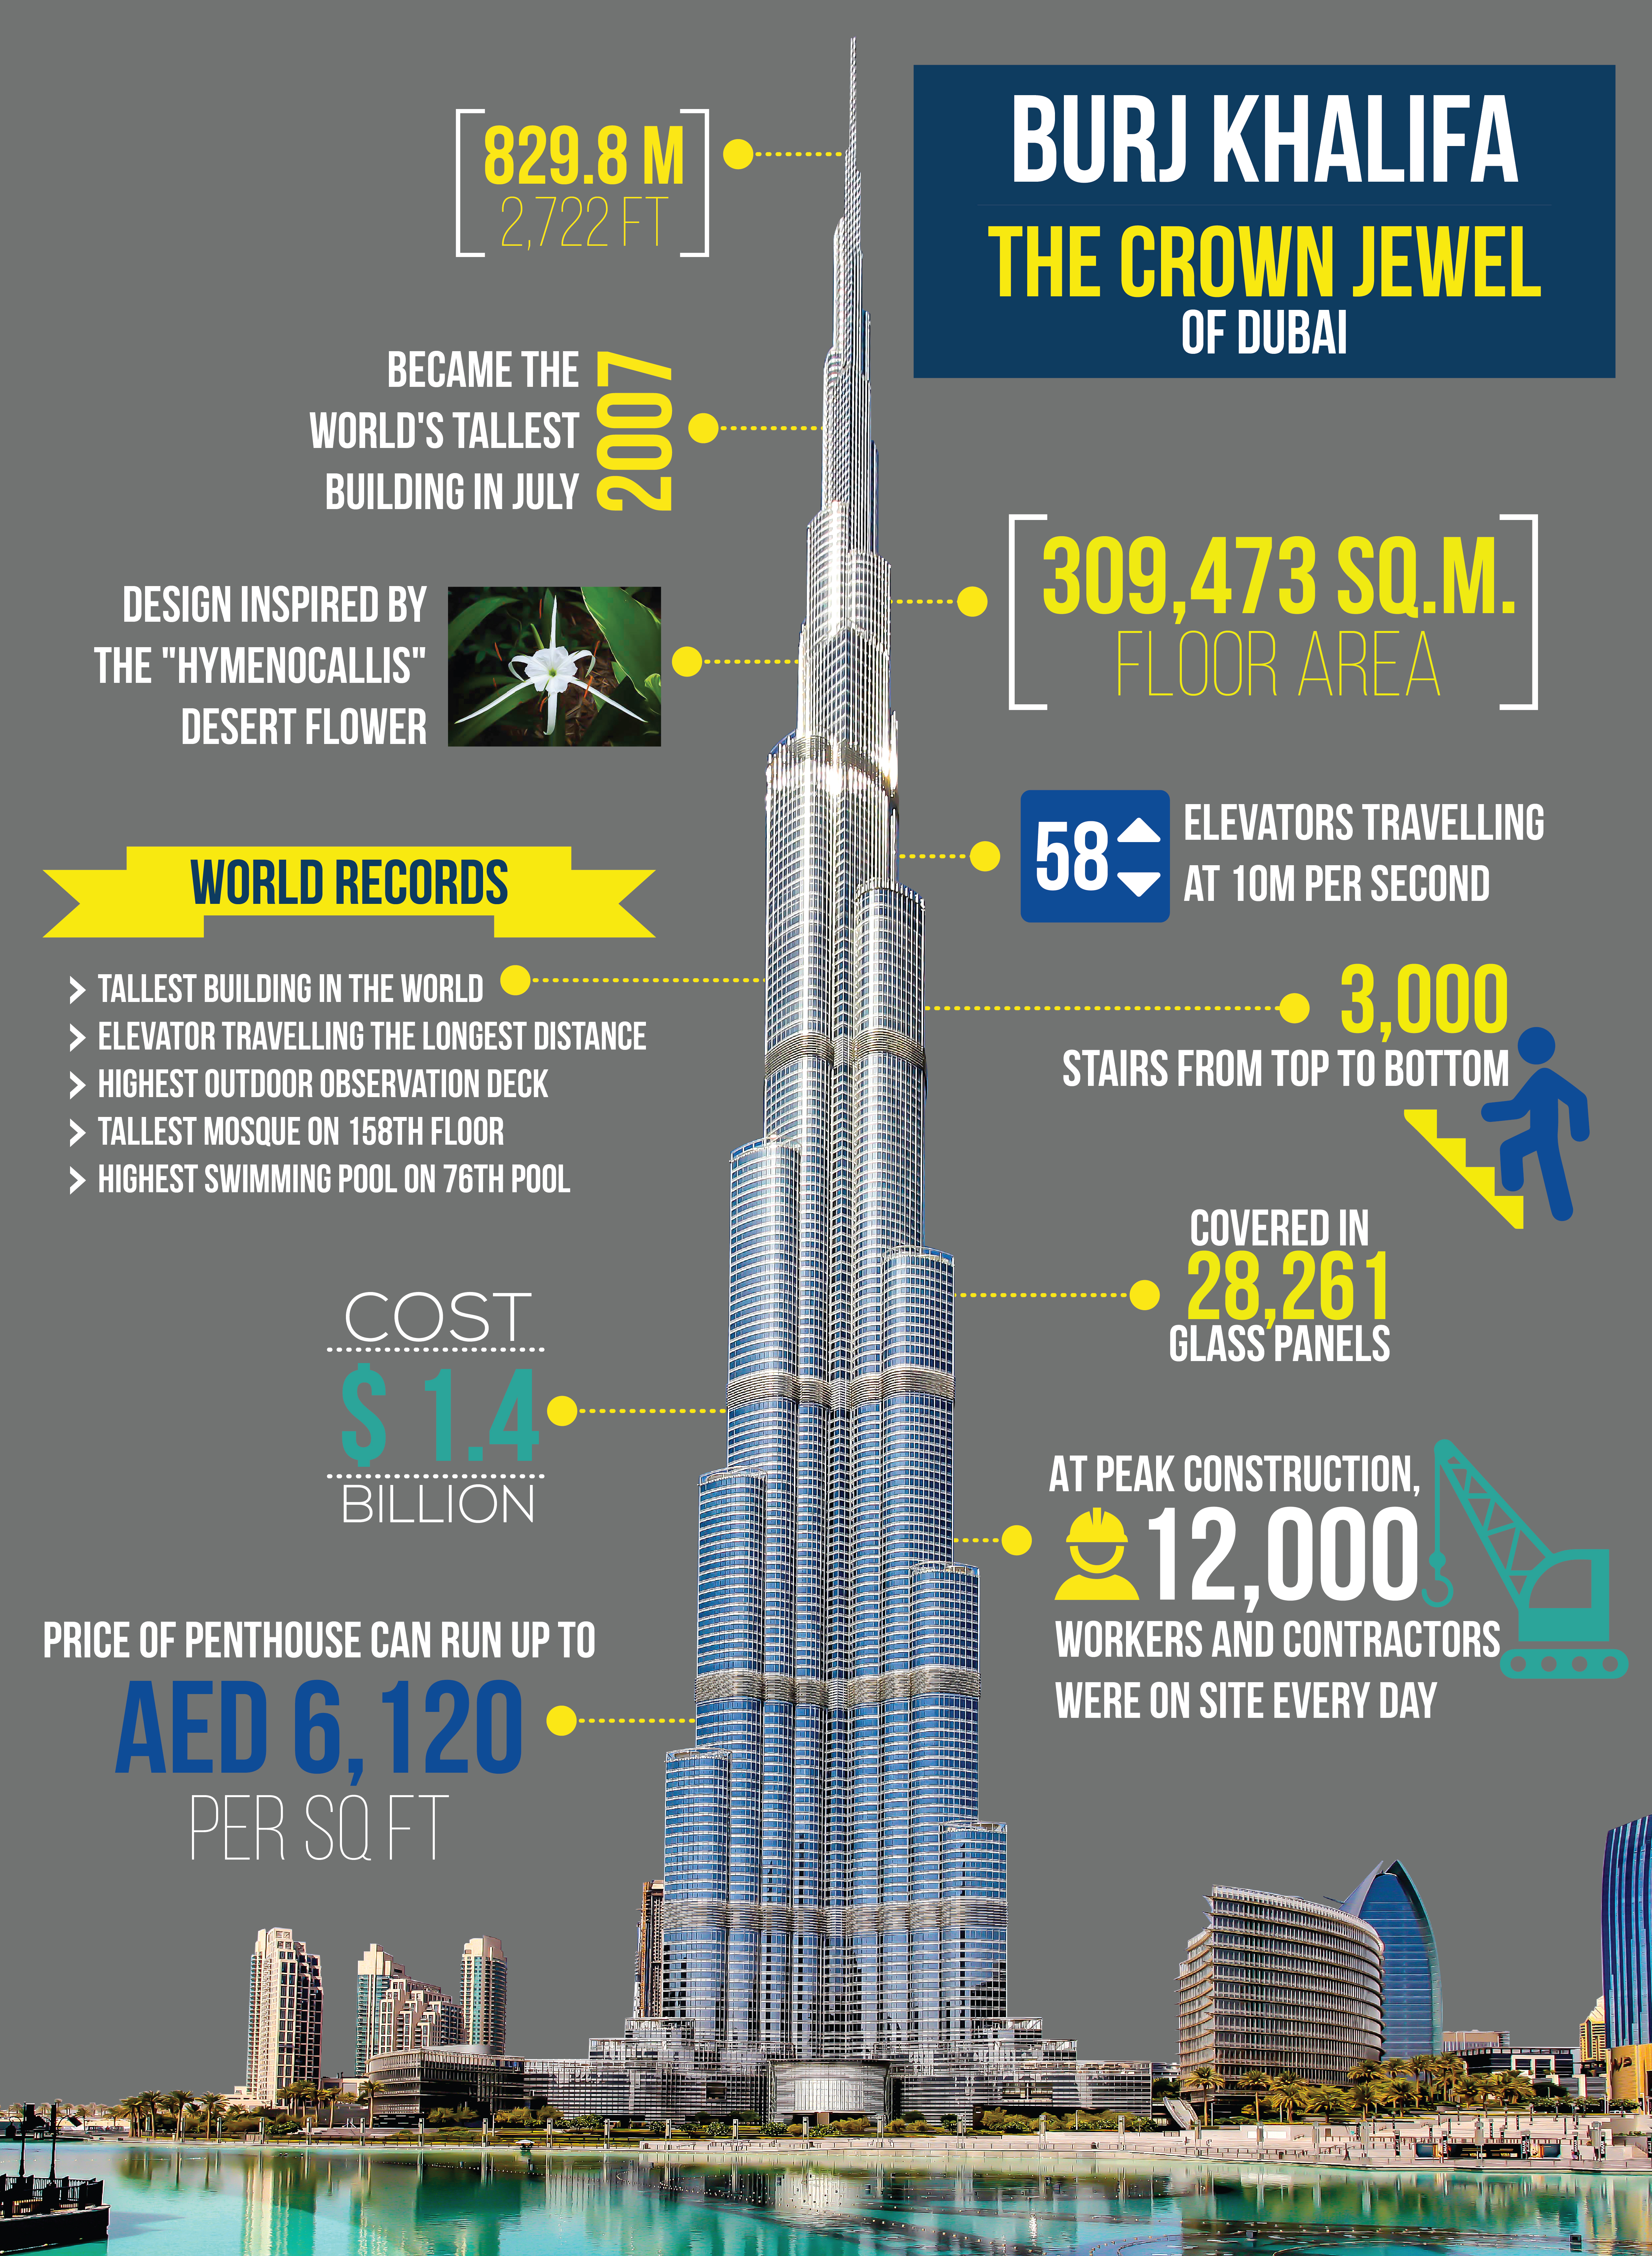 Infographic: The Facts and World Records of Burj Khalifa, the Crown Jewel of Downtown Dubai